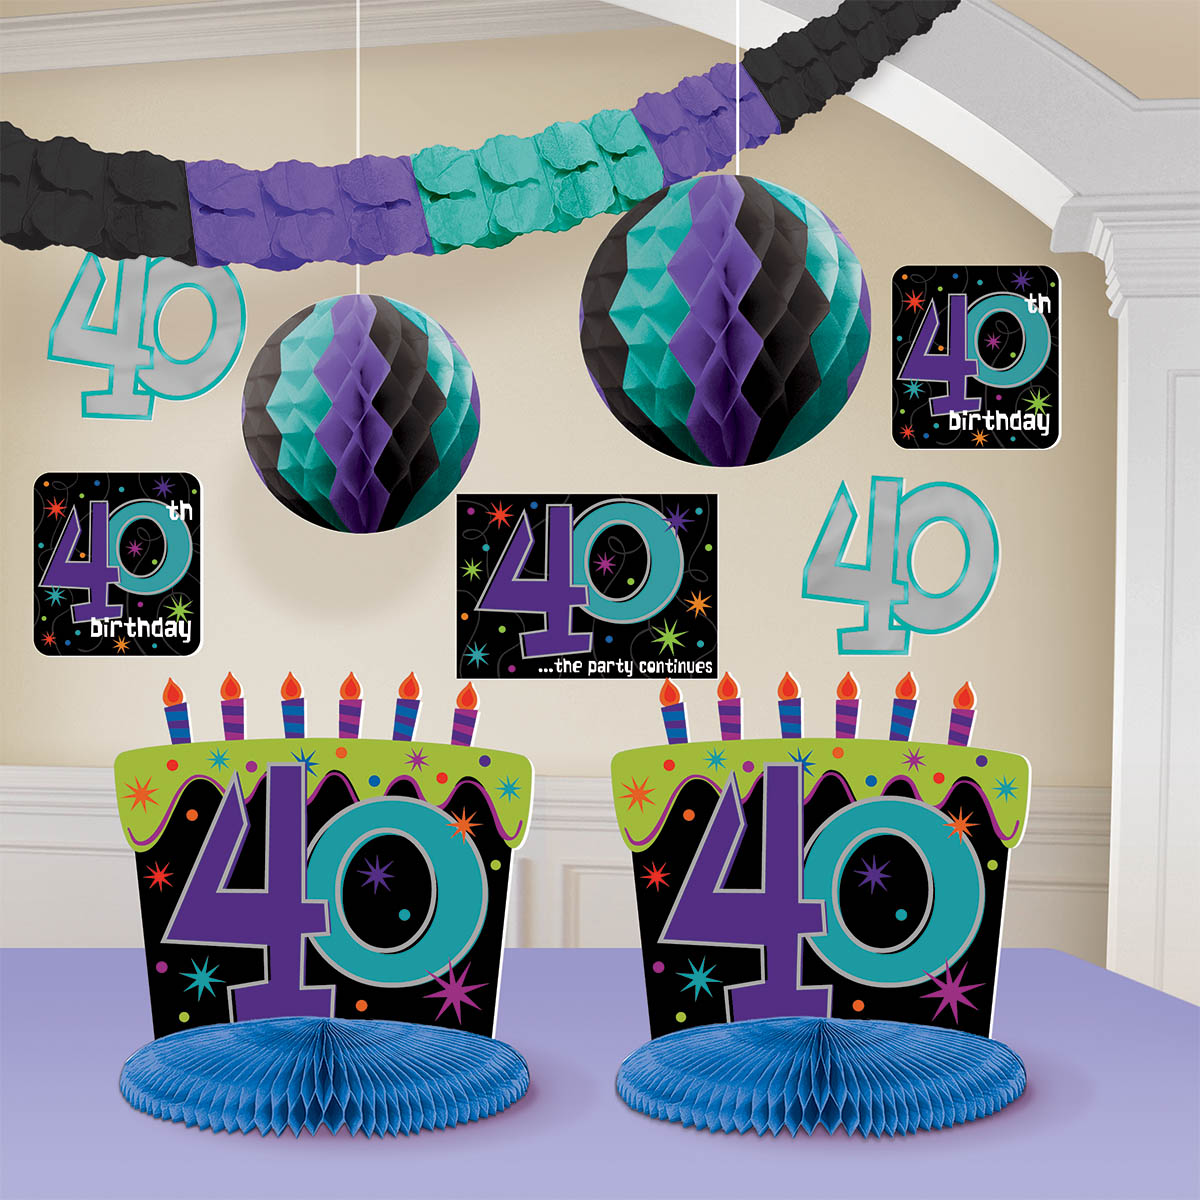 At 40 Party Decorations 40 The Party Continues Archives The Party Starts Here